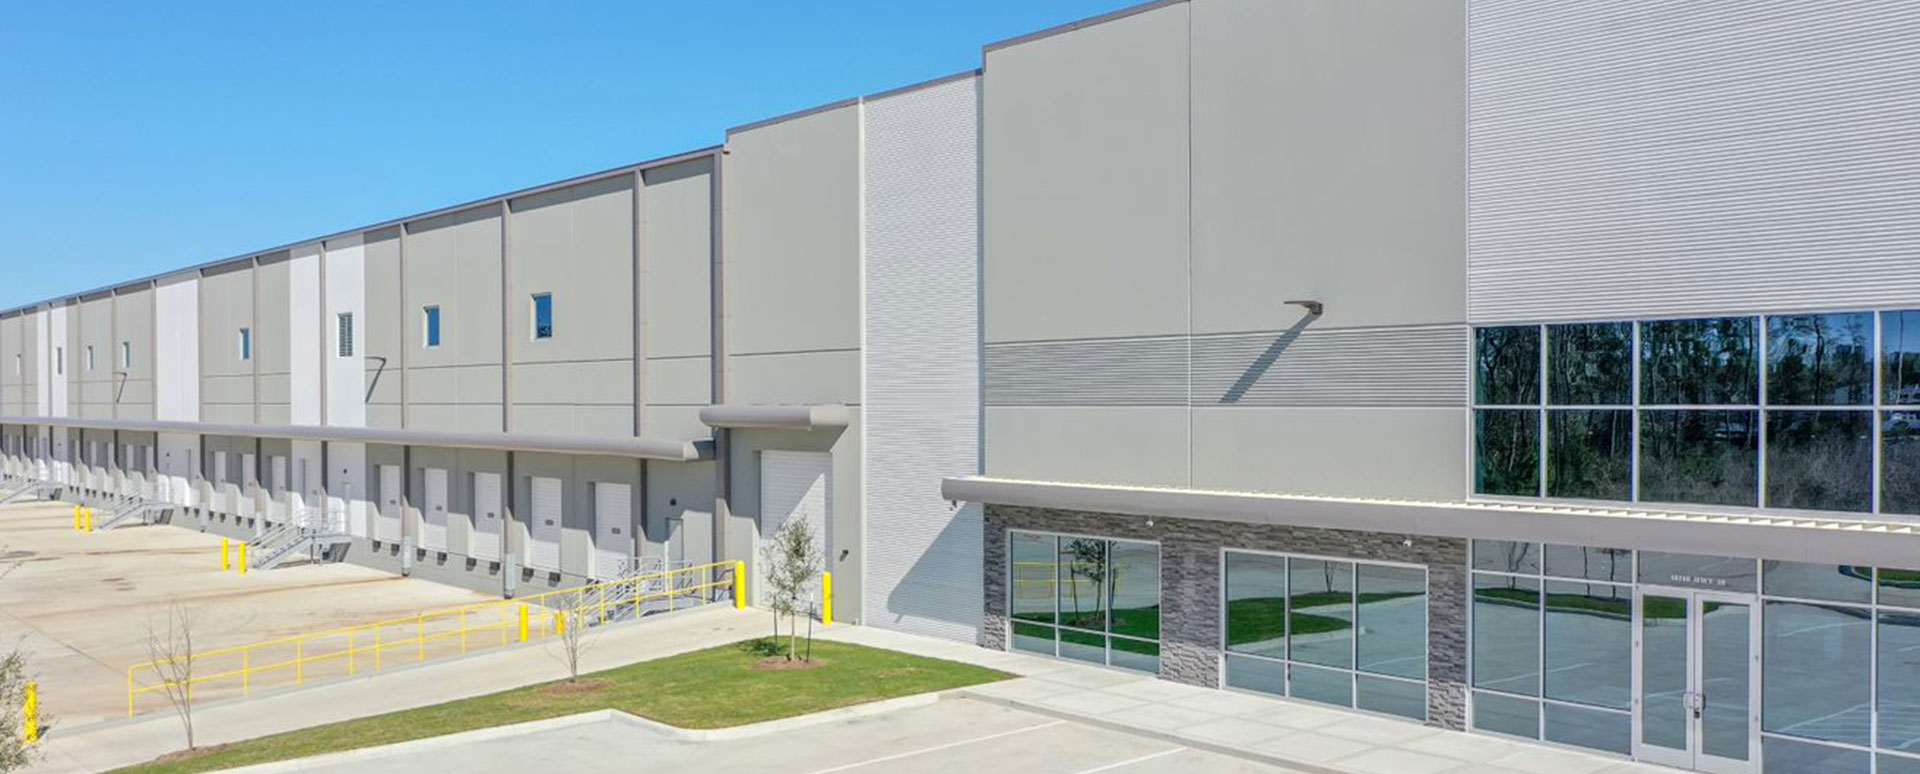 Recently Completed: Air 59 Logistics Center - Humble, TX 1